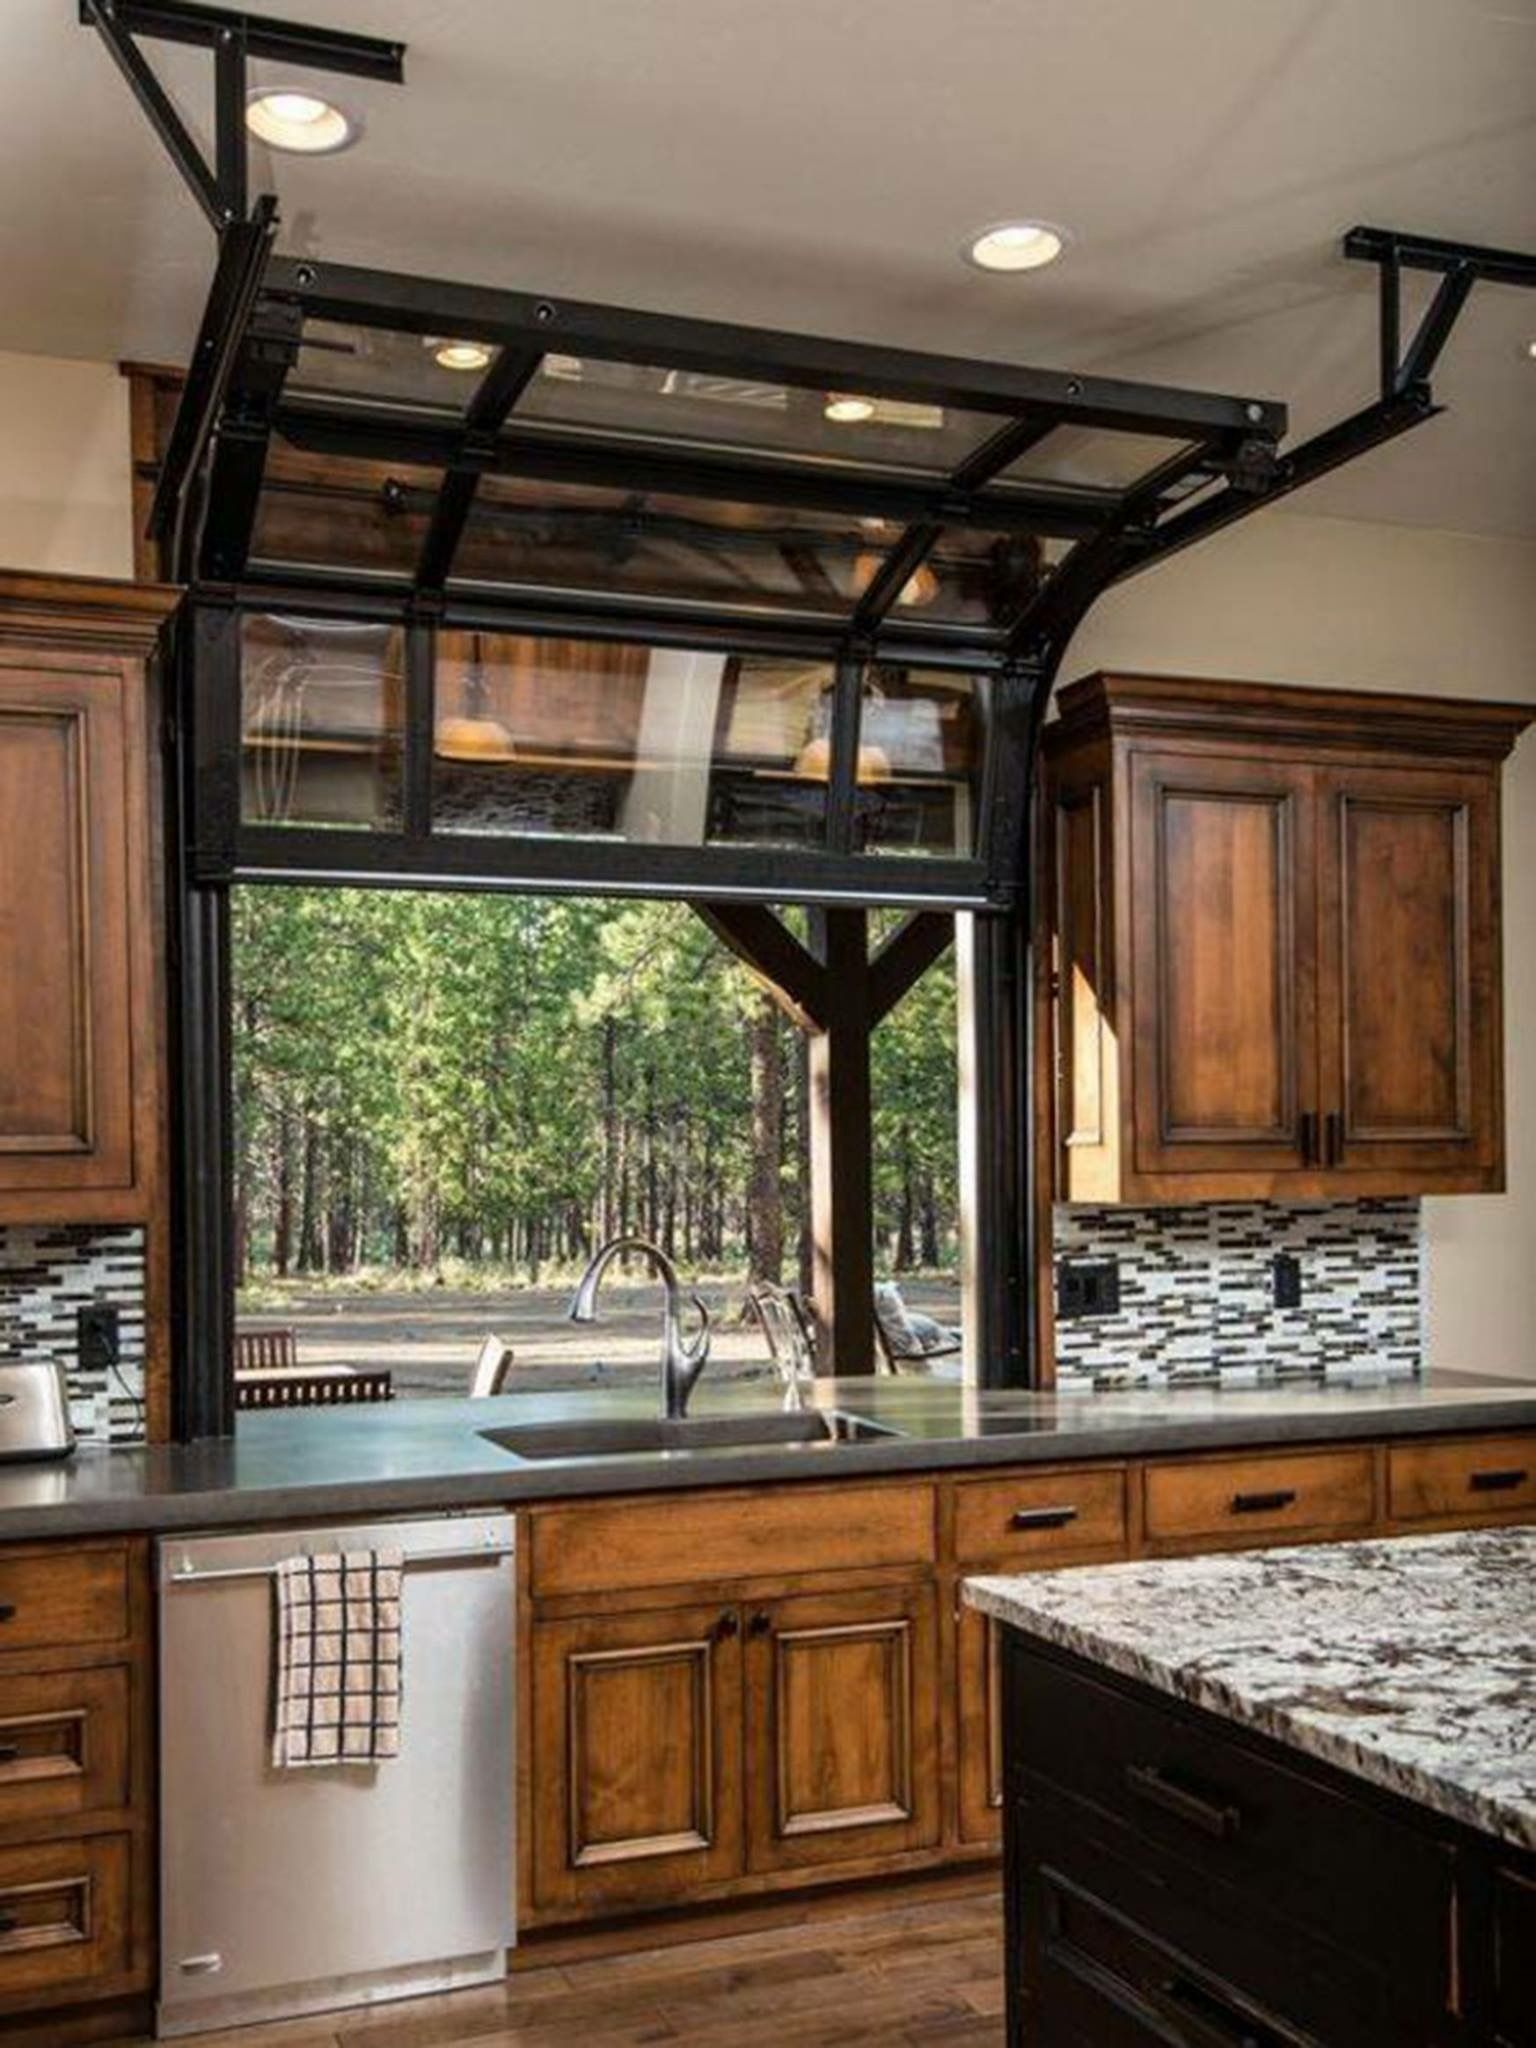 kitchen roll up window house design home house plans on kitchen interior with window id=21567